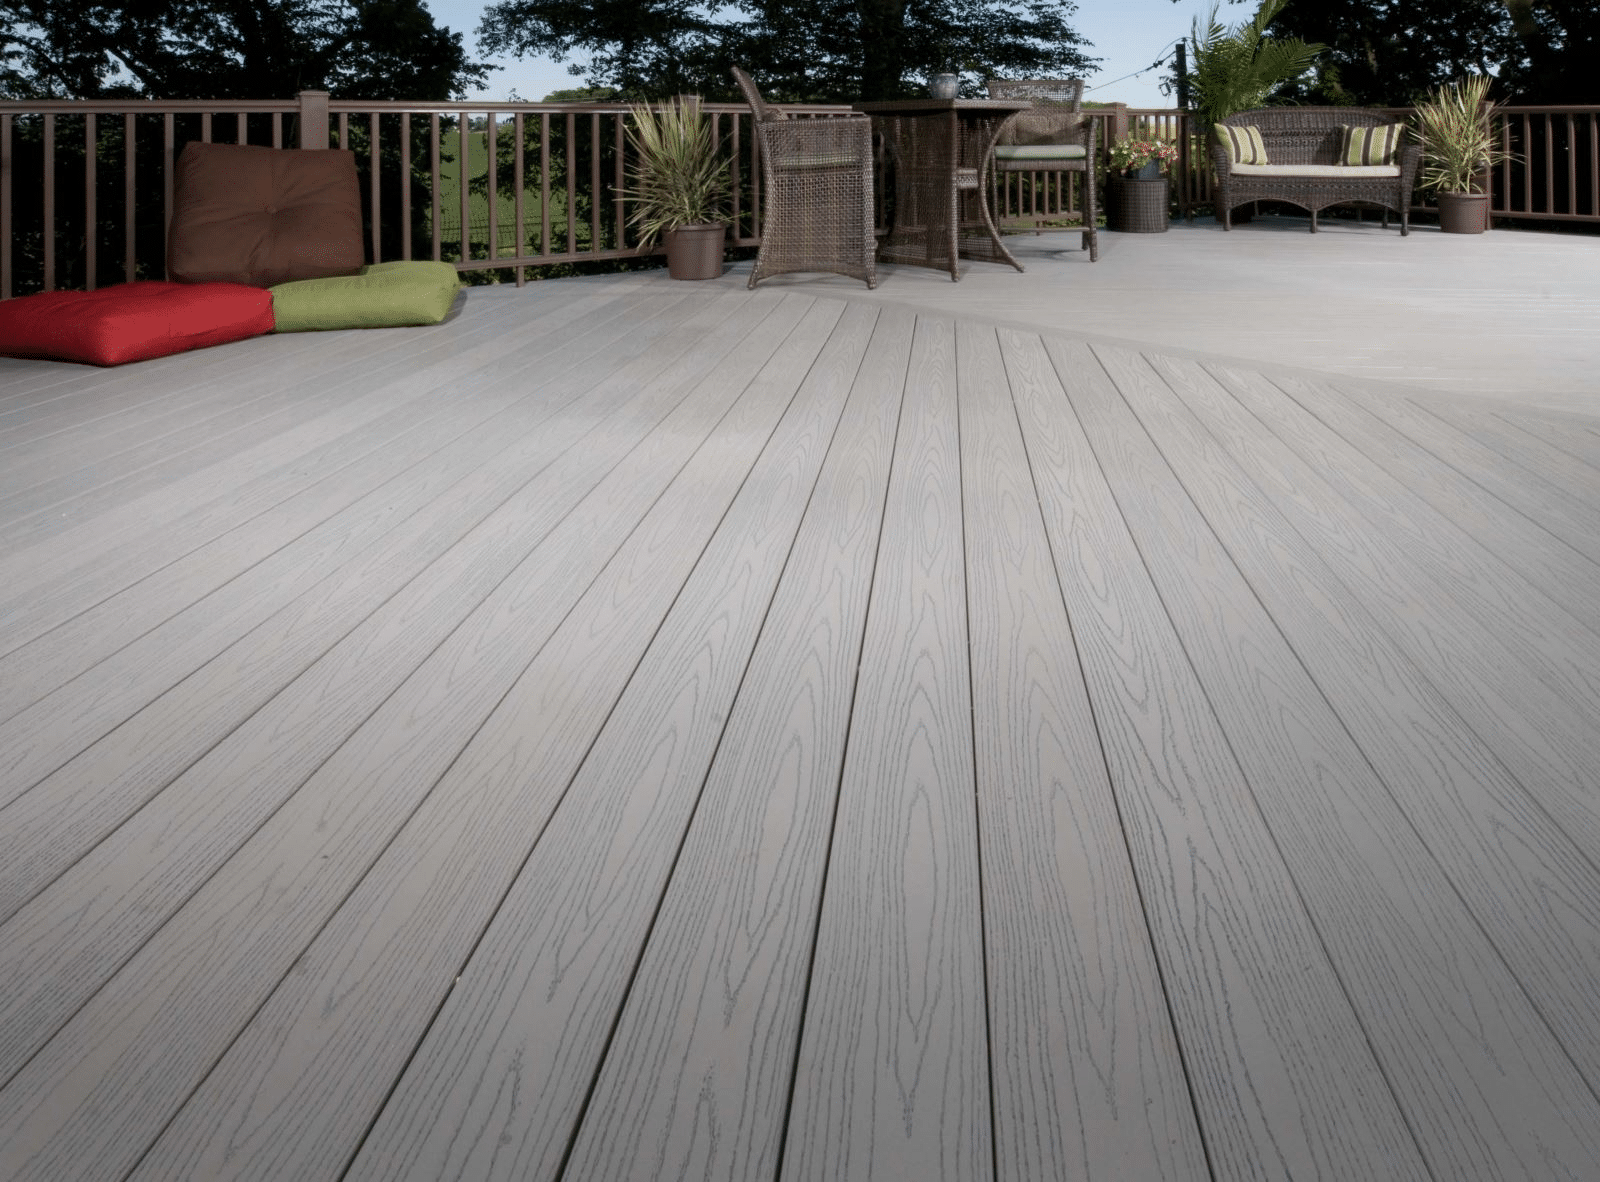 Pvc Composite Decking : Pvc decking lakeside lumber the northwest s premier